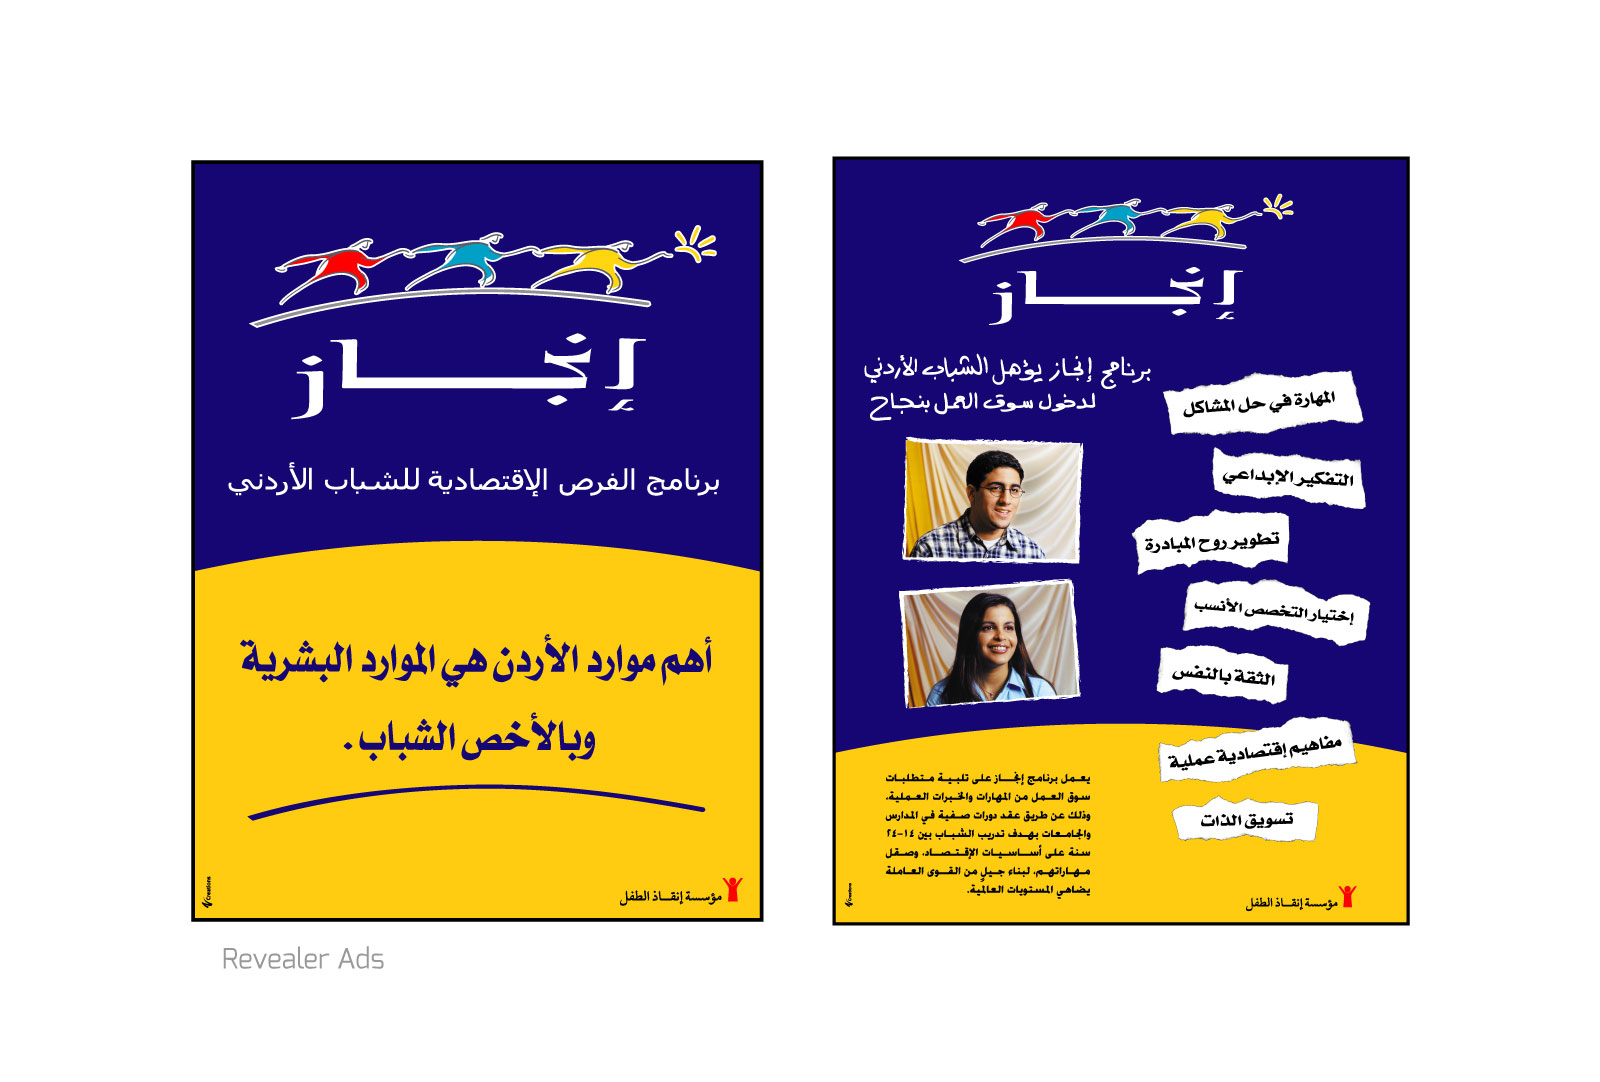 INJAZ Launch Ad Campaign Revealer Ads designed by Creations